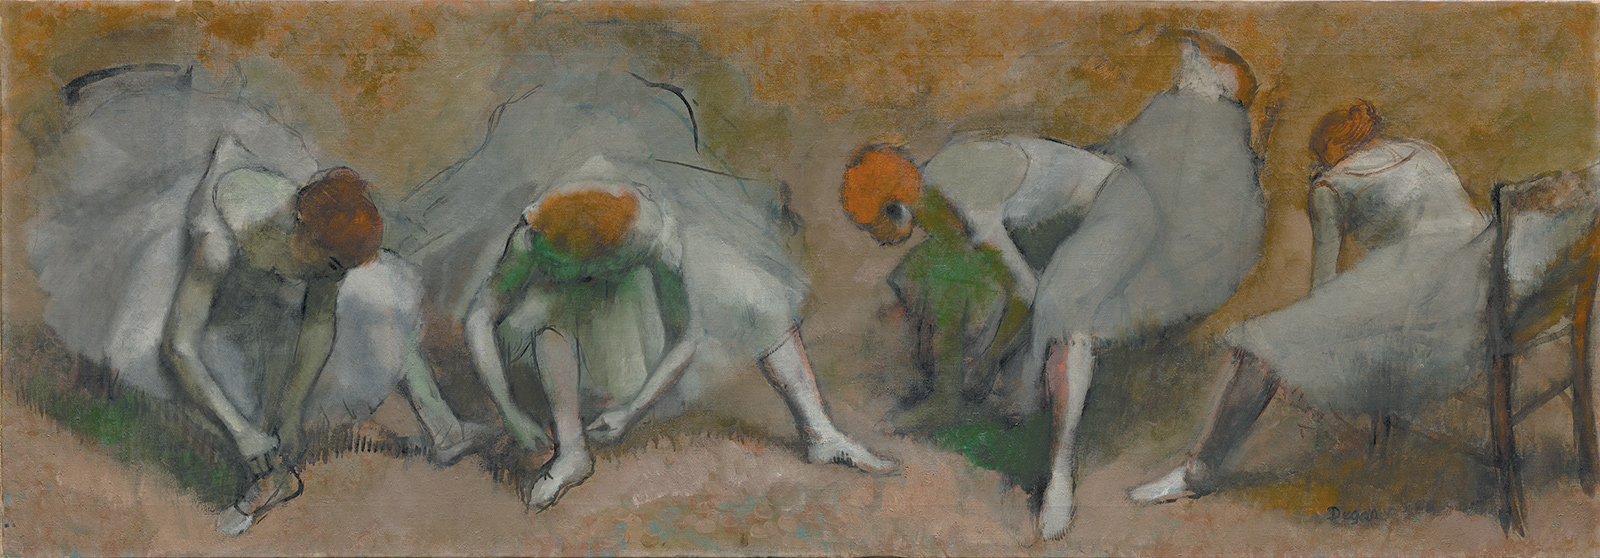 Edgar Degas: Frieze of Dancers, oil on canvas, circa 1895